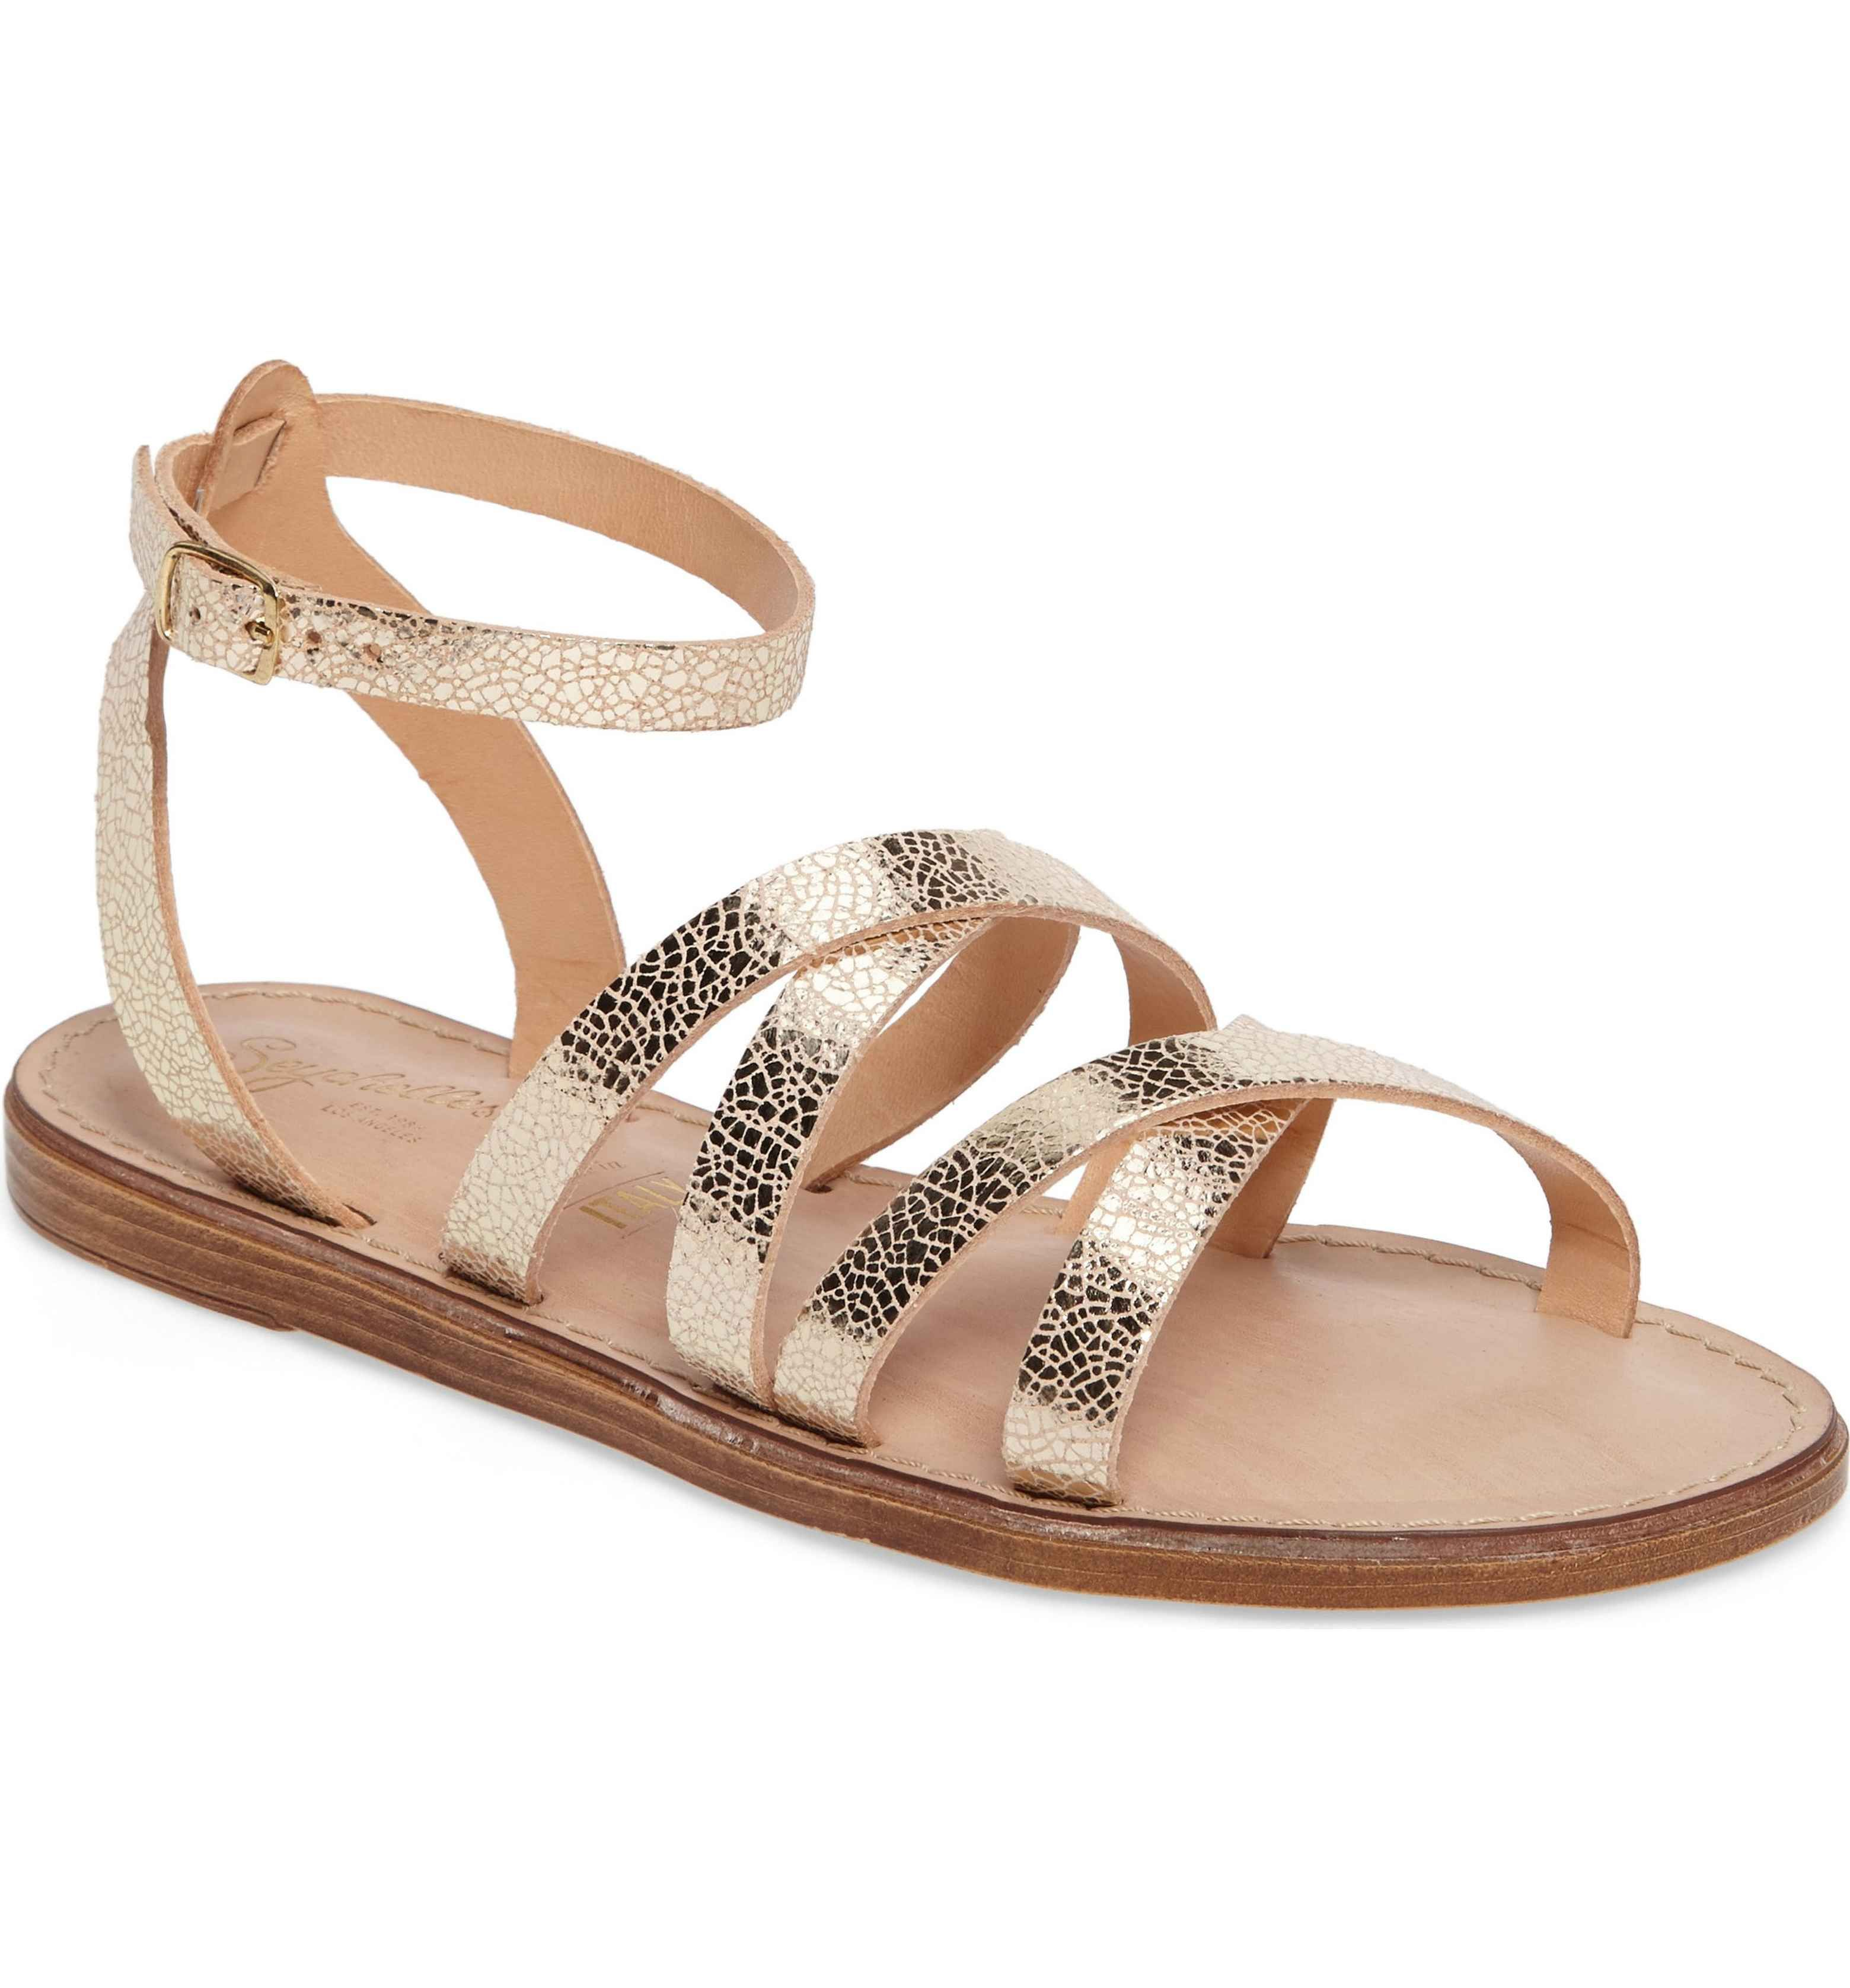 Seychelles In the Shadows Sandal (Women | Sandals, Shoes